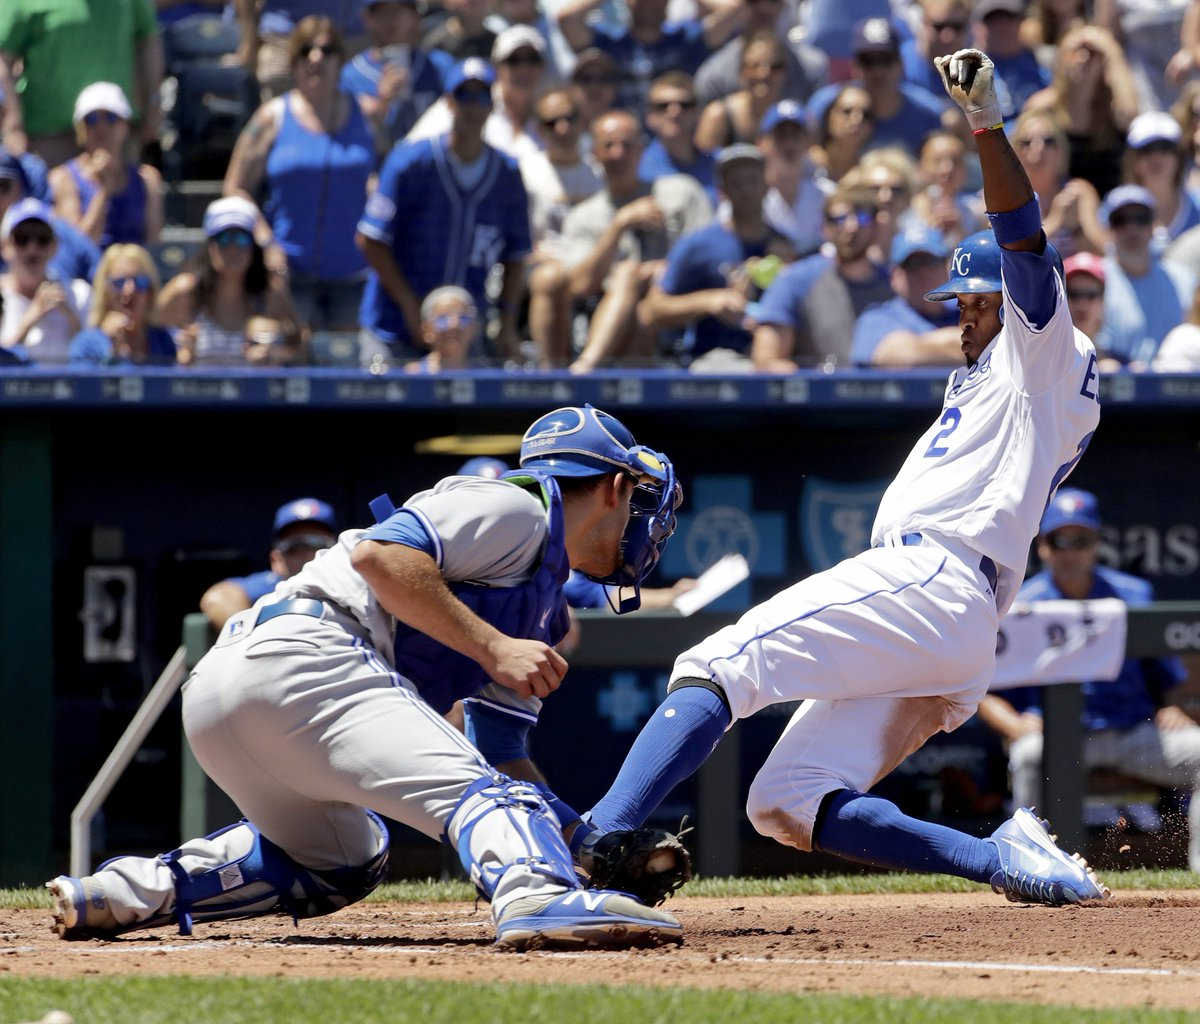 CROWNED IN KC: Alcides Escobar scored a pair of runs as the #Royals ed...